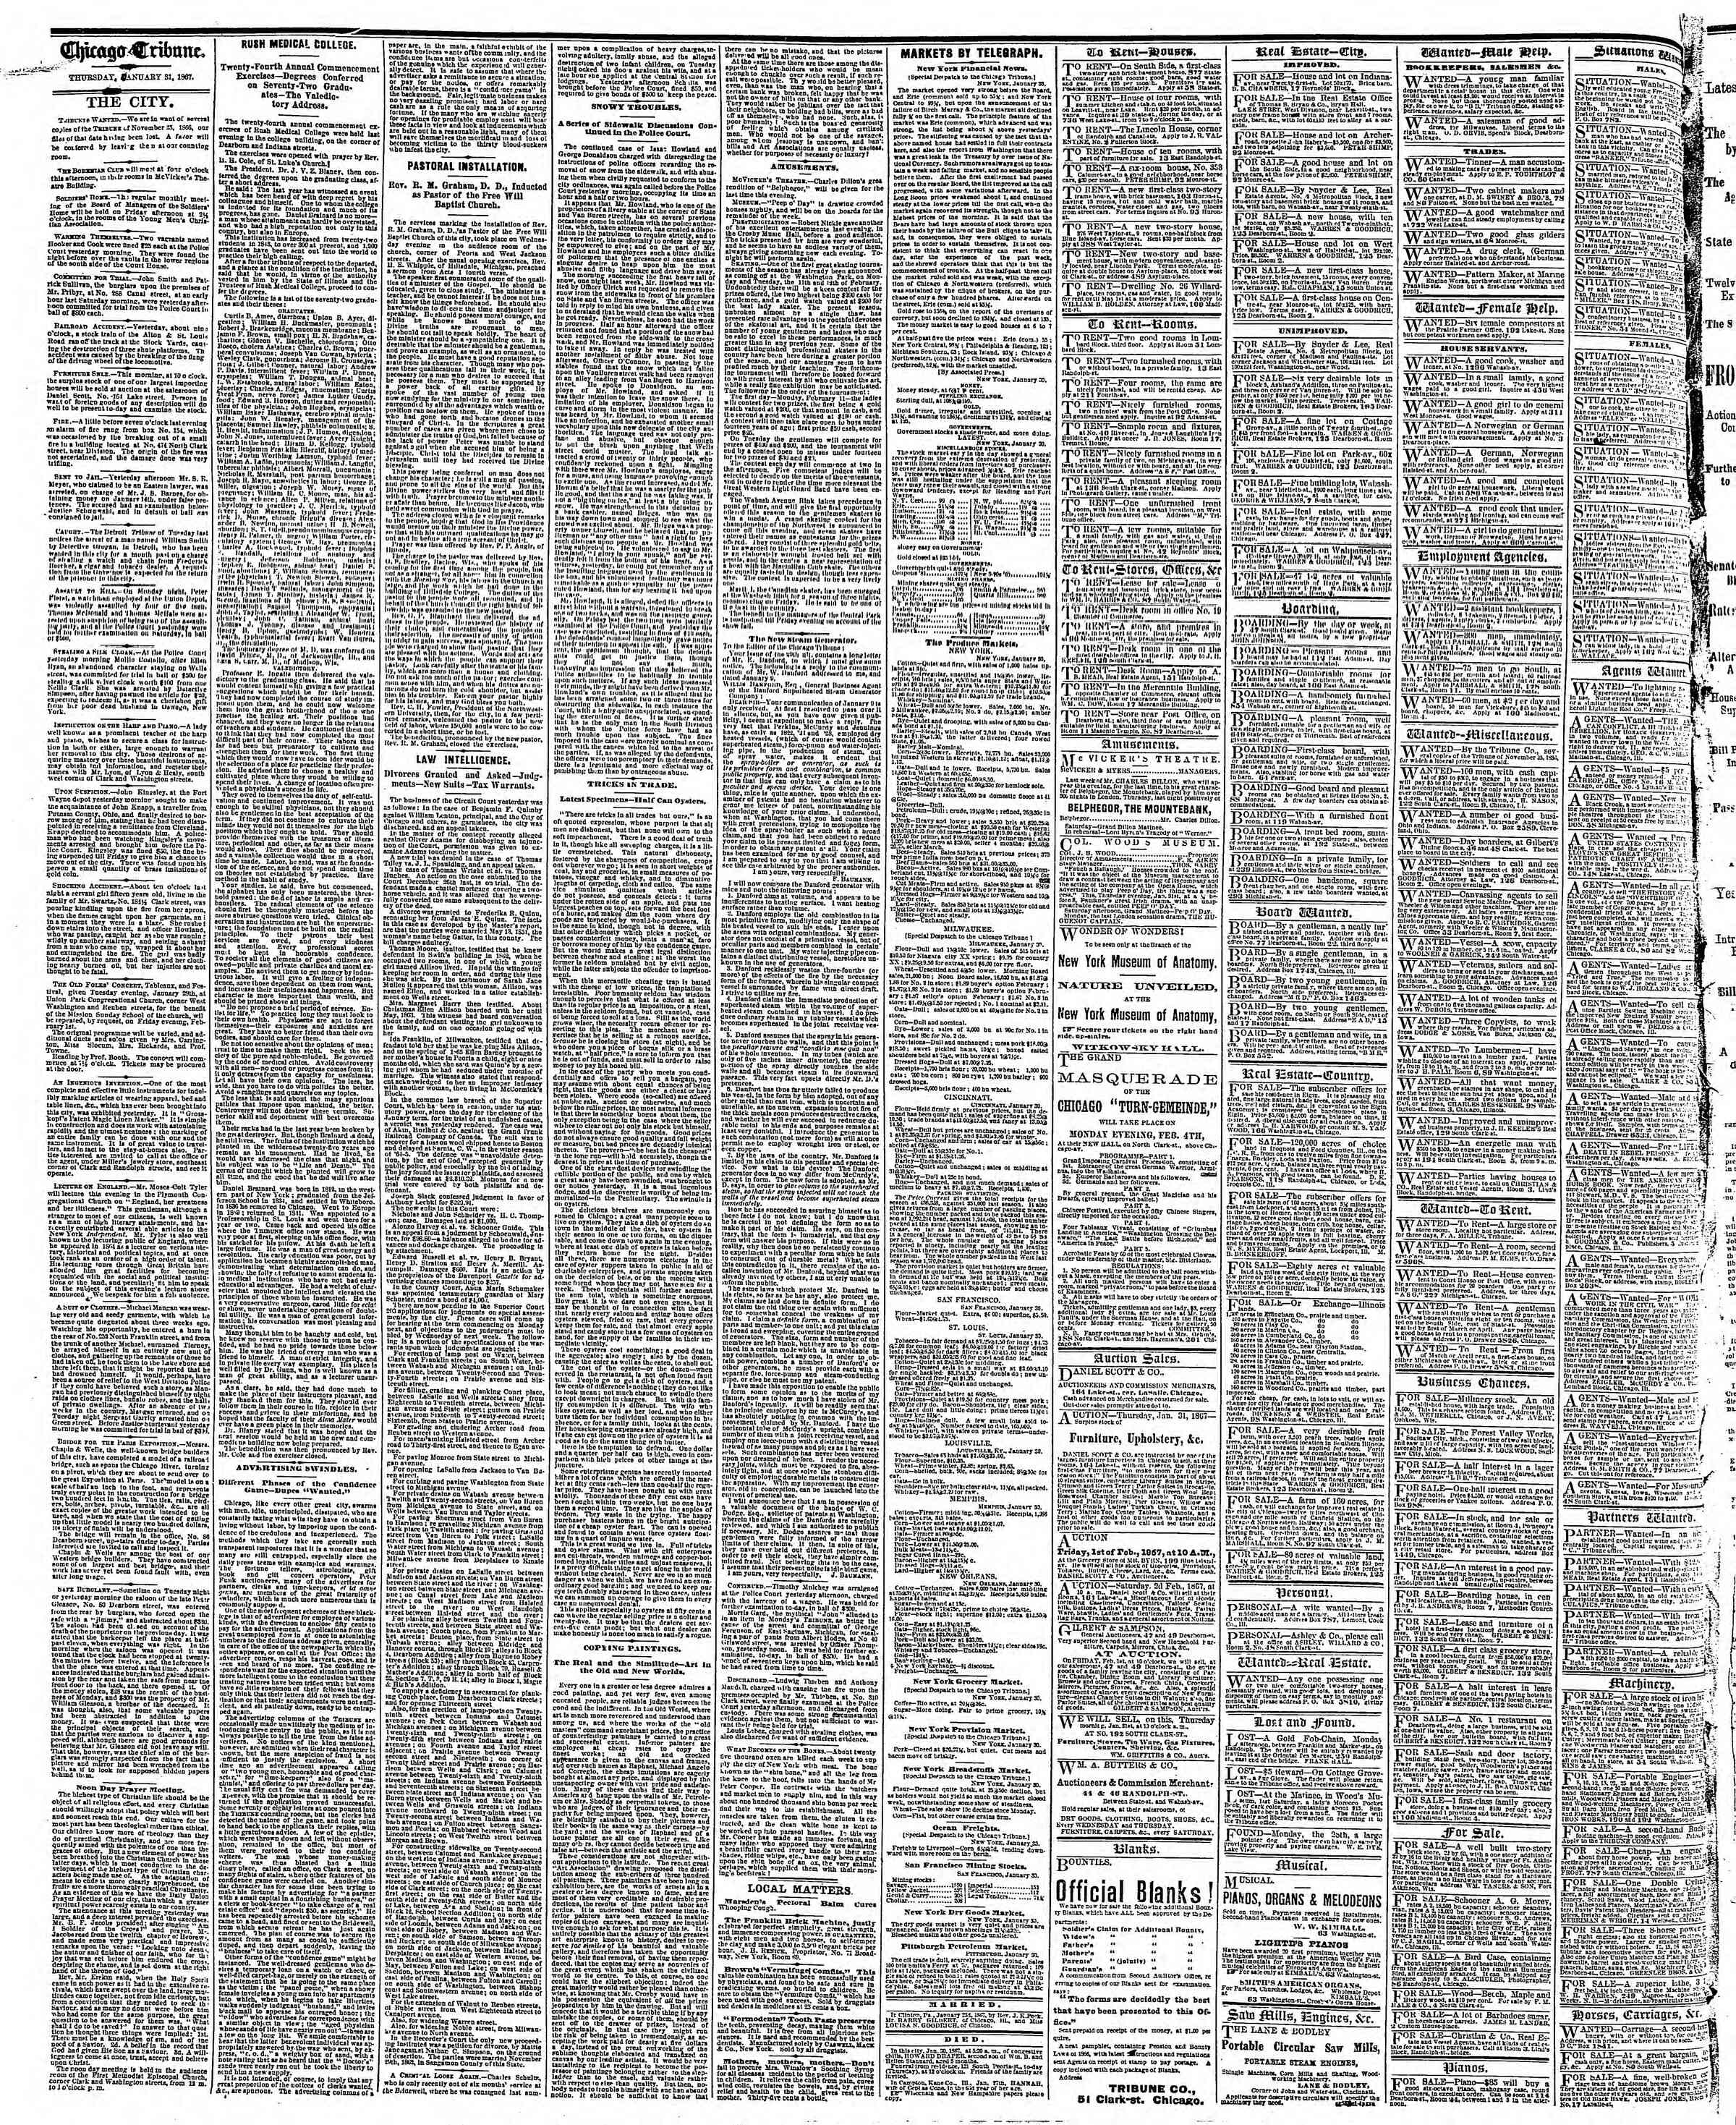 Newspaper of The Chicago Tribune dated 31 Ocak 1867 Page 4